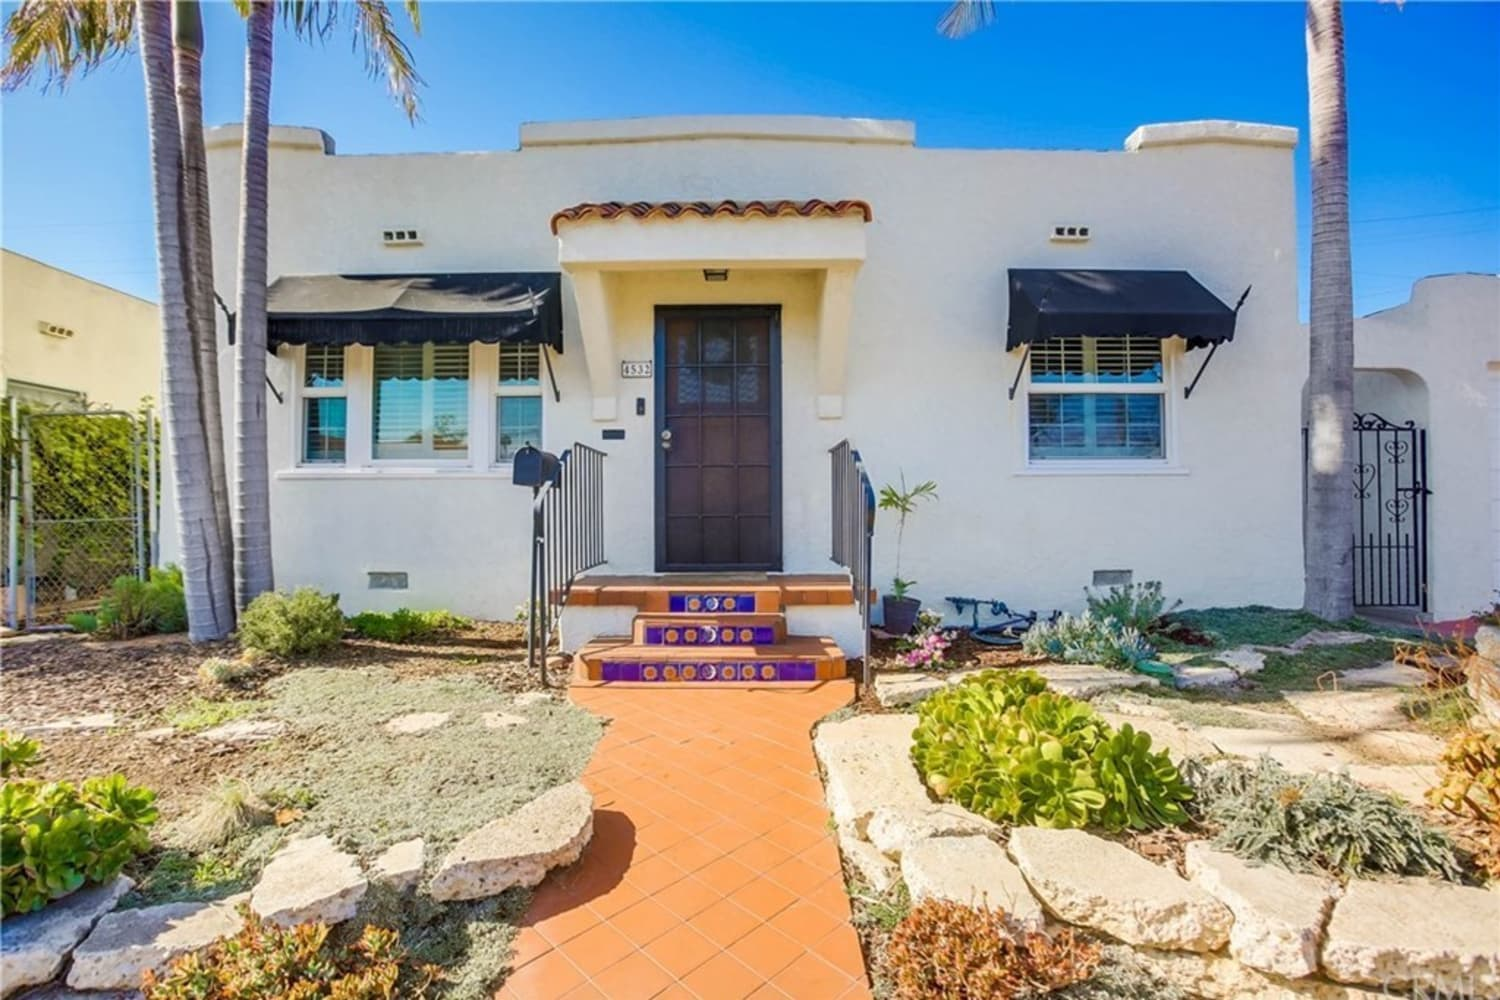 You Need to Peek Inside This Adorable Mission-Style Cottage for Sale in San Diego